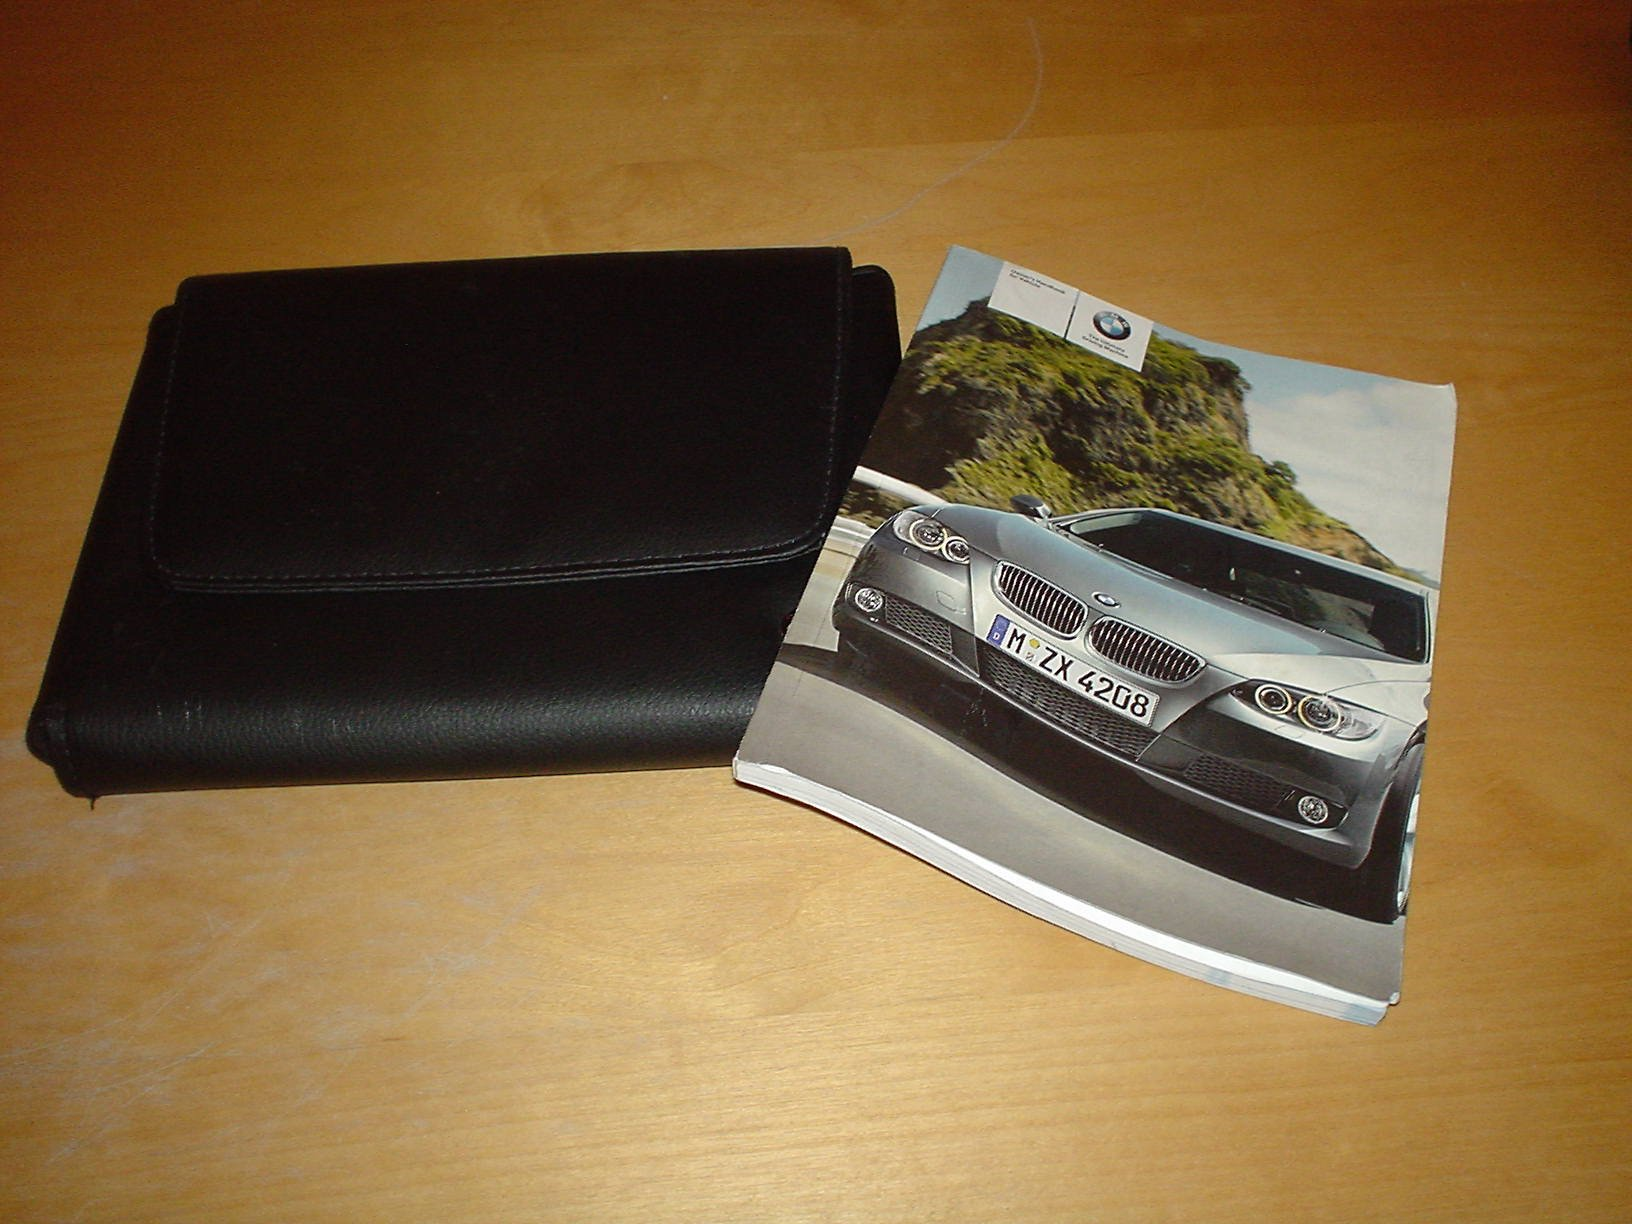 BMW 3 SERIES E92 COUPE E93 CONVERTIBLE OWNERS HANDBOOK MANUAL Not Haynes  (2005 - 2010) 320 325 330 335 i d xi xd 320i 325i 325xi 330i 330xi 335i  335xi 320d ...